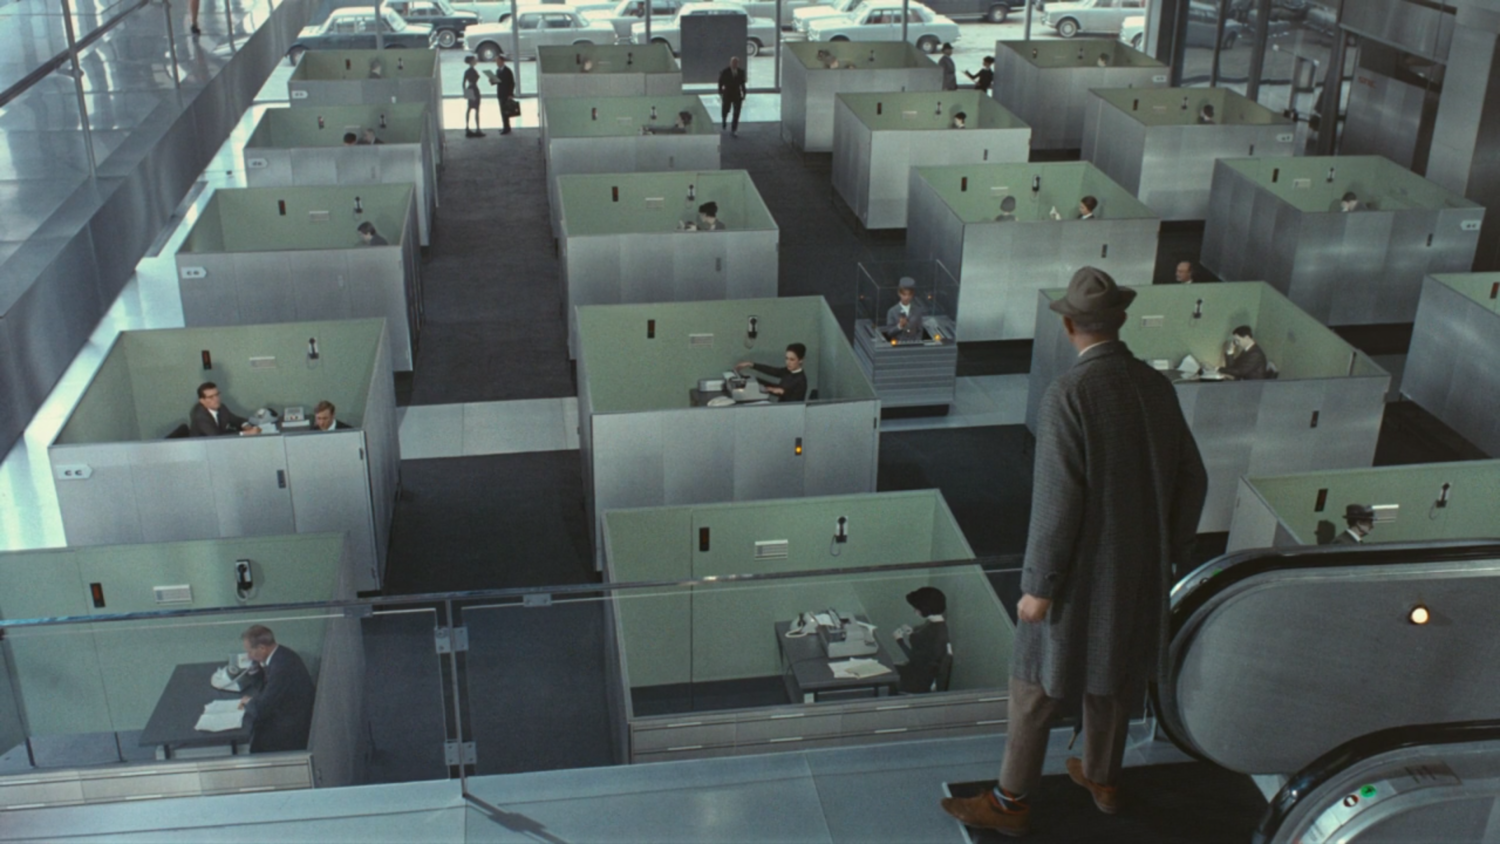 #17) Playtime - (1967 - dir. Jacques Tati)